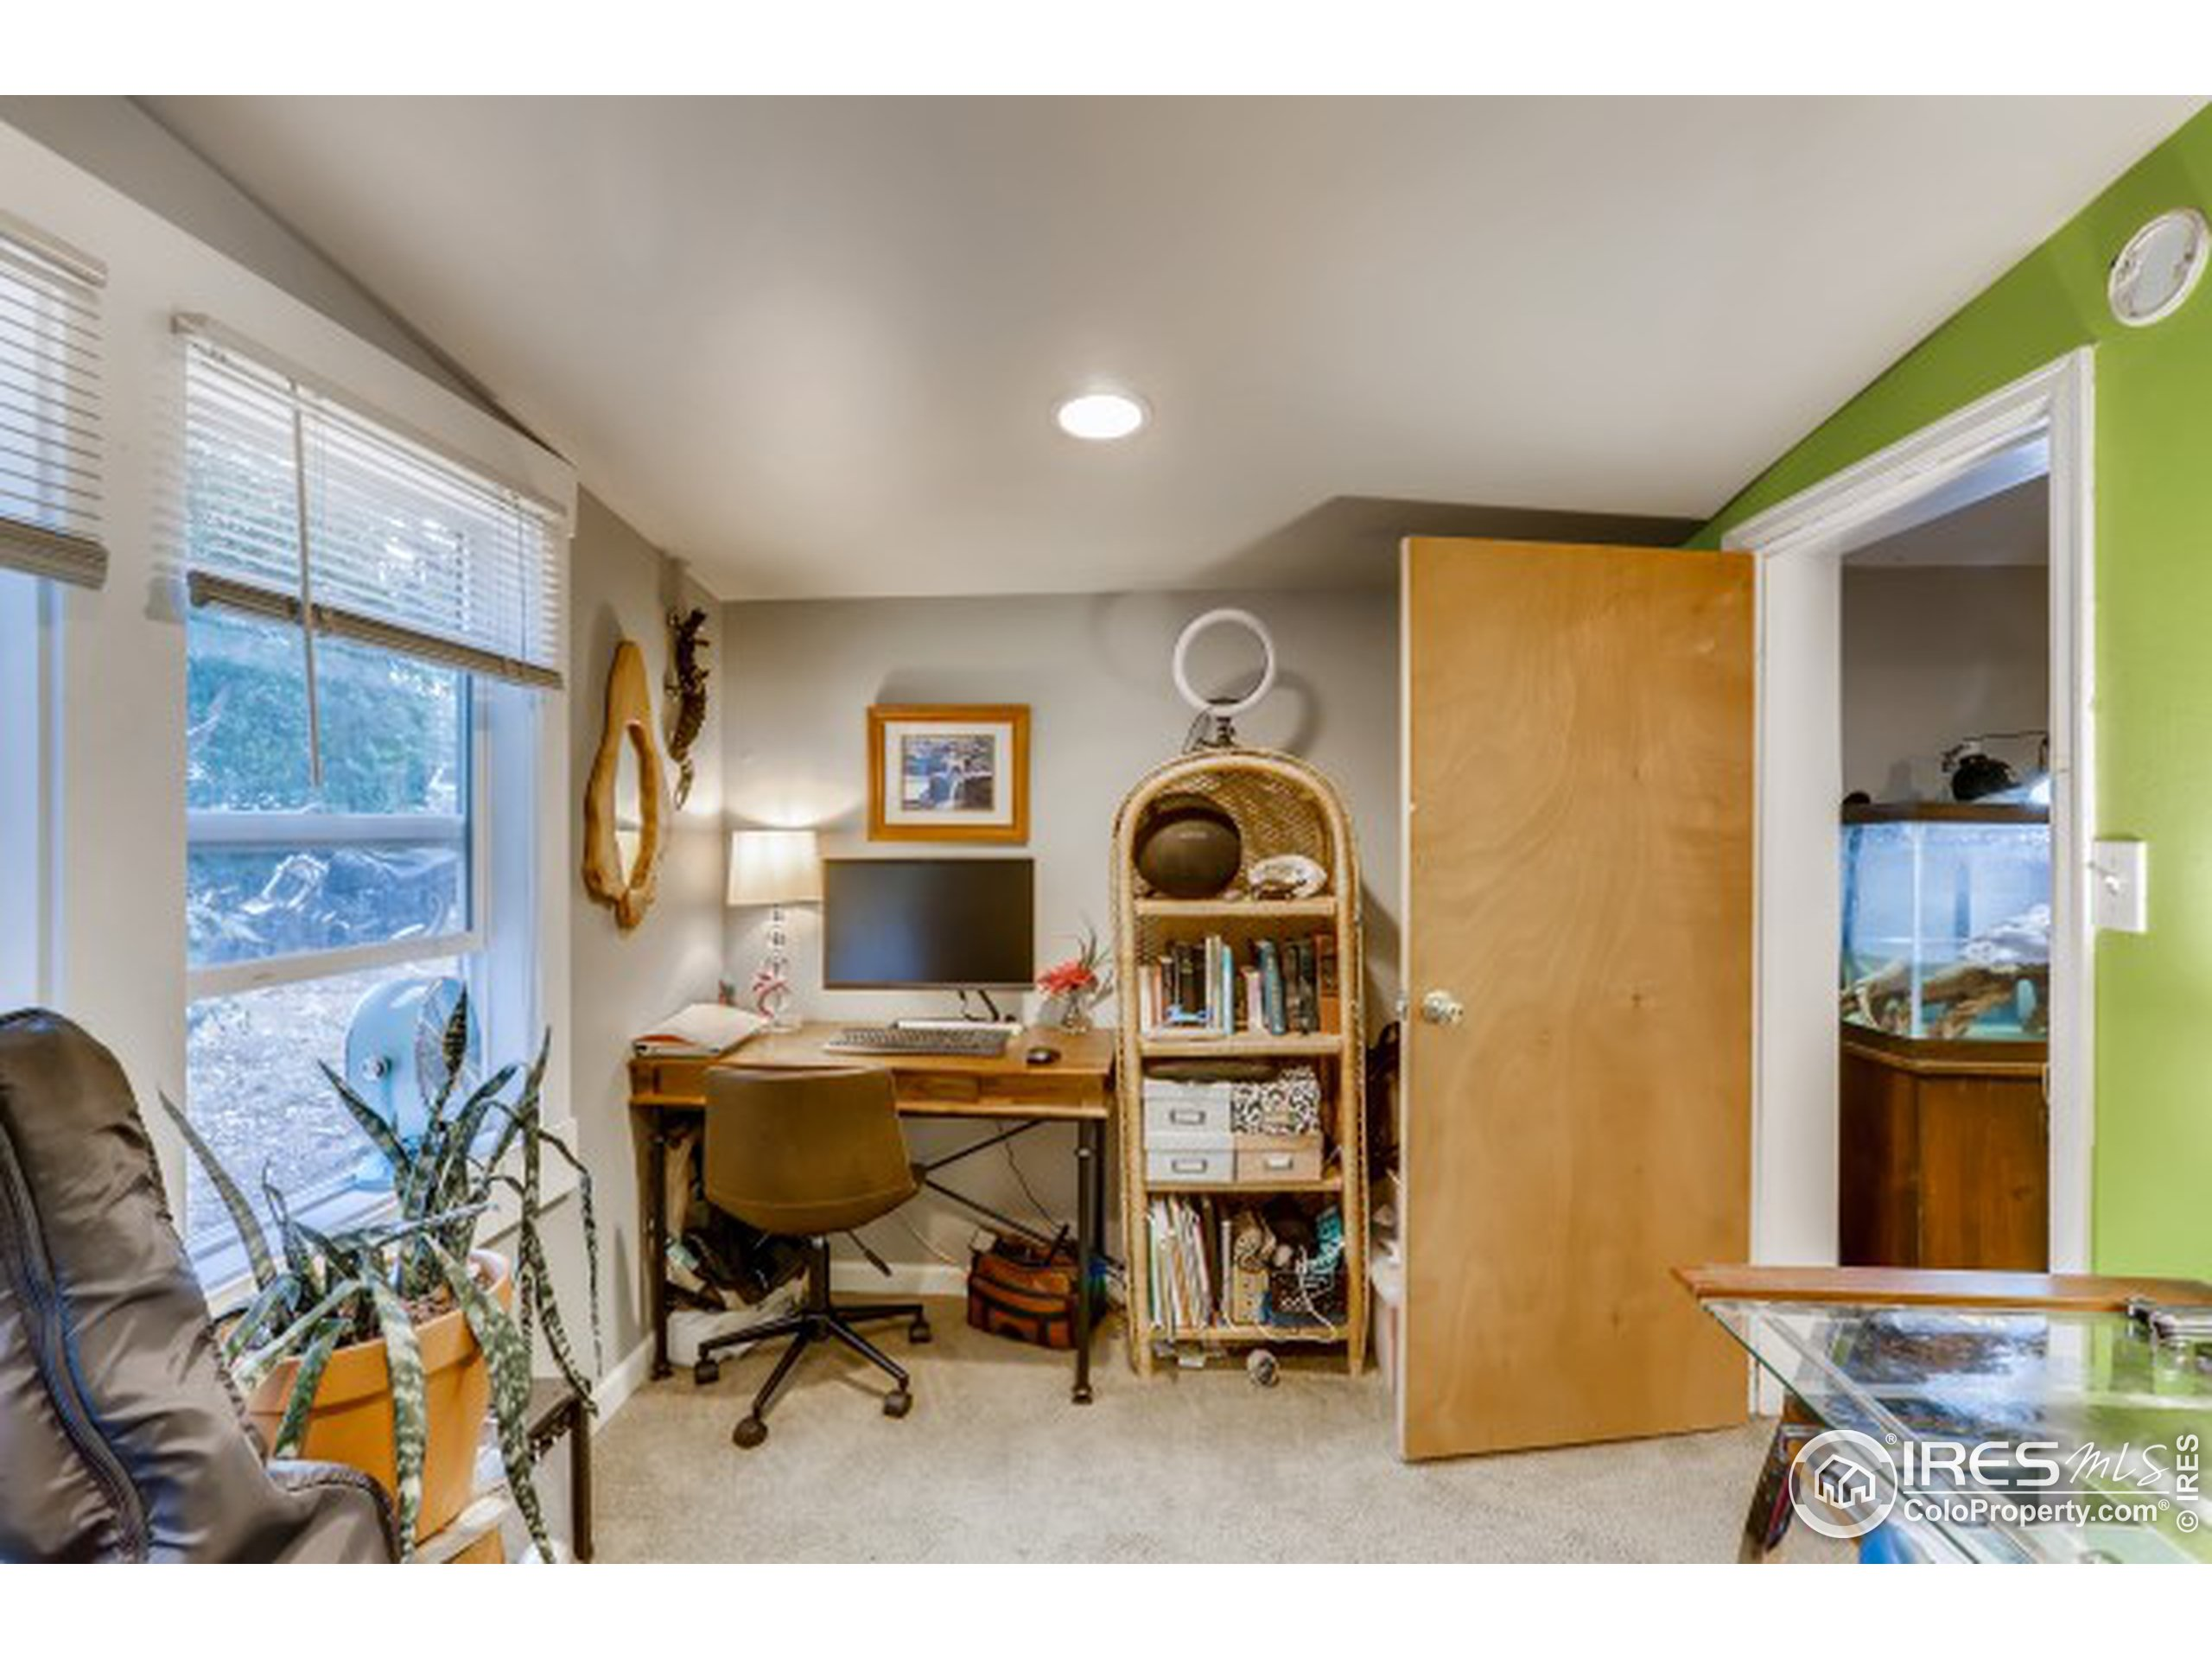 Unit 2 - office or 2nd bedroom (no closet)